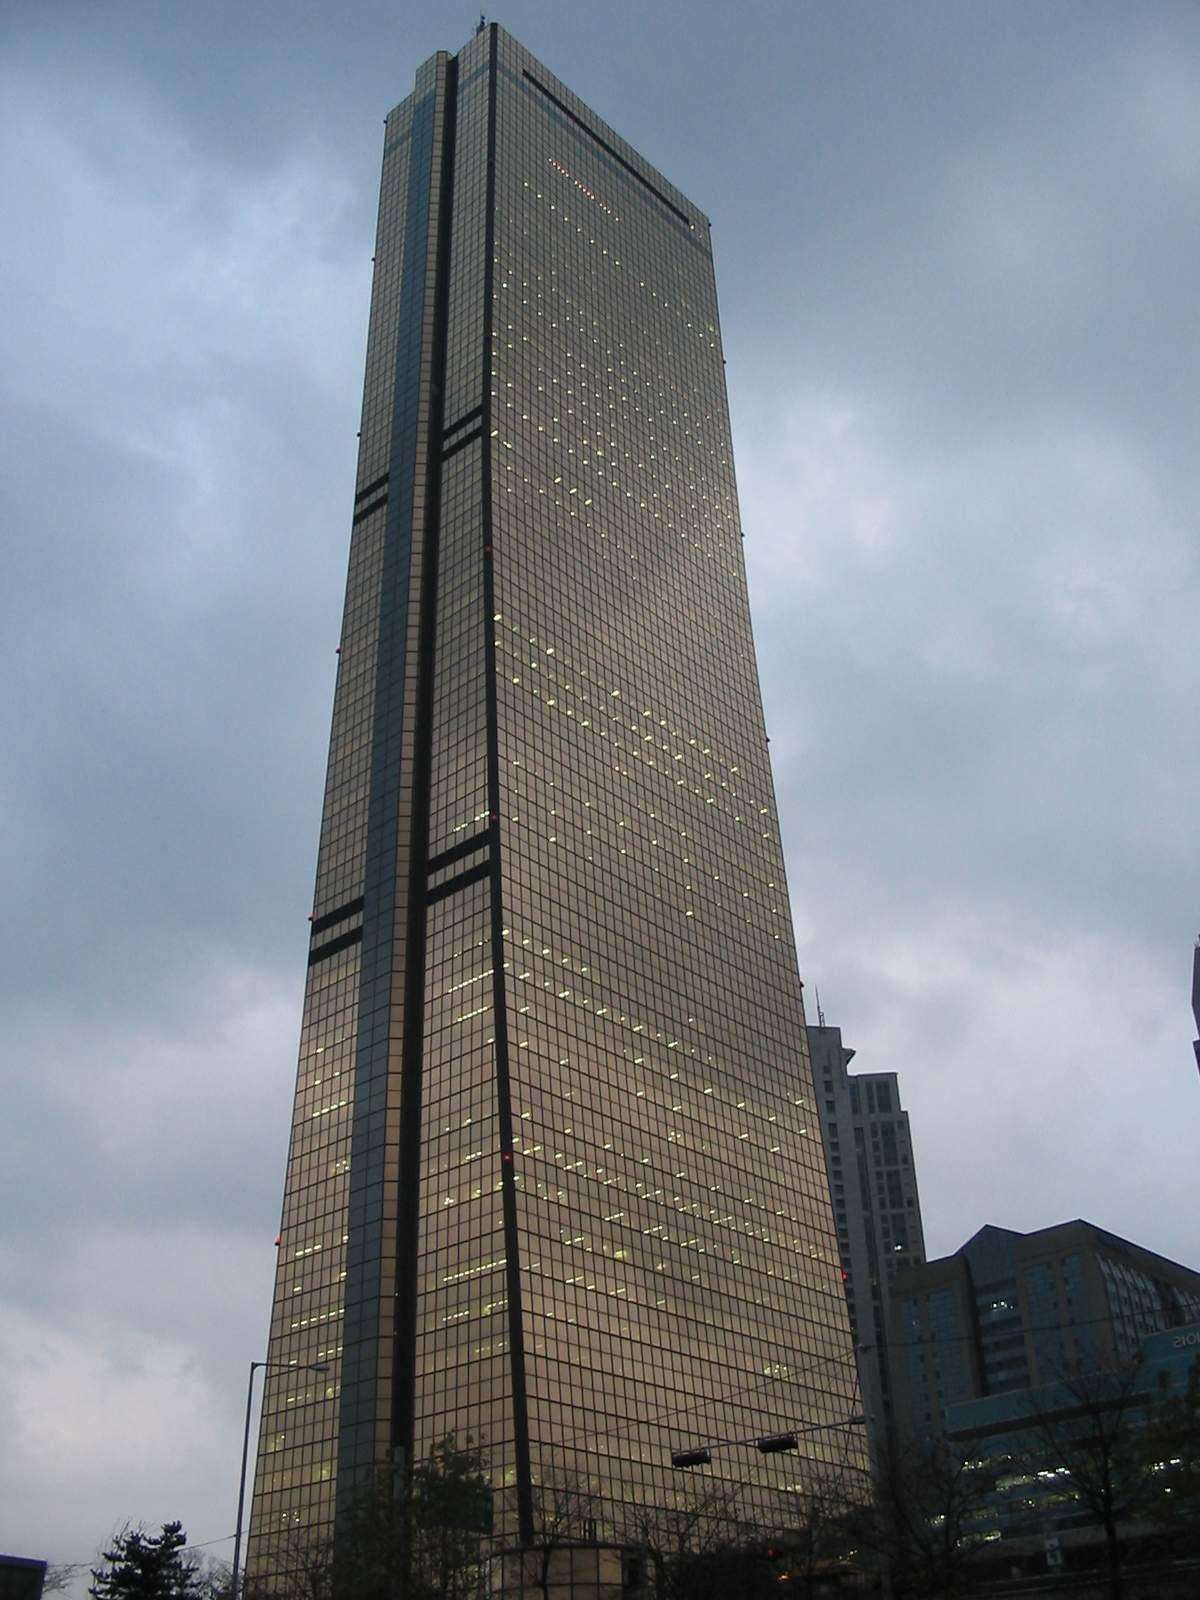 Tallest Building In Seoul South Korea 1999 I Ve Seen Some